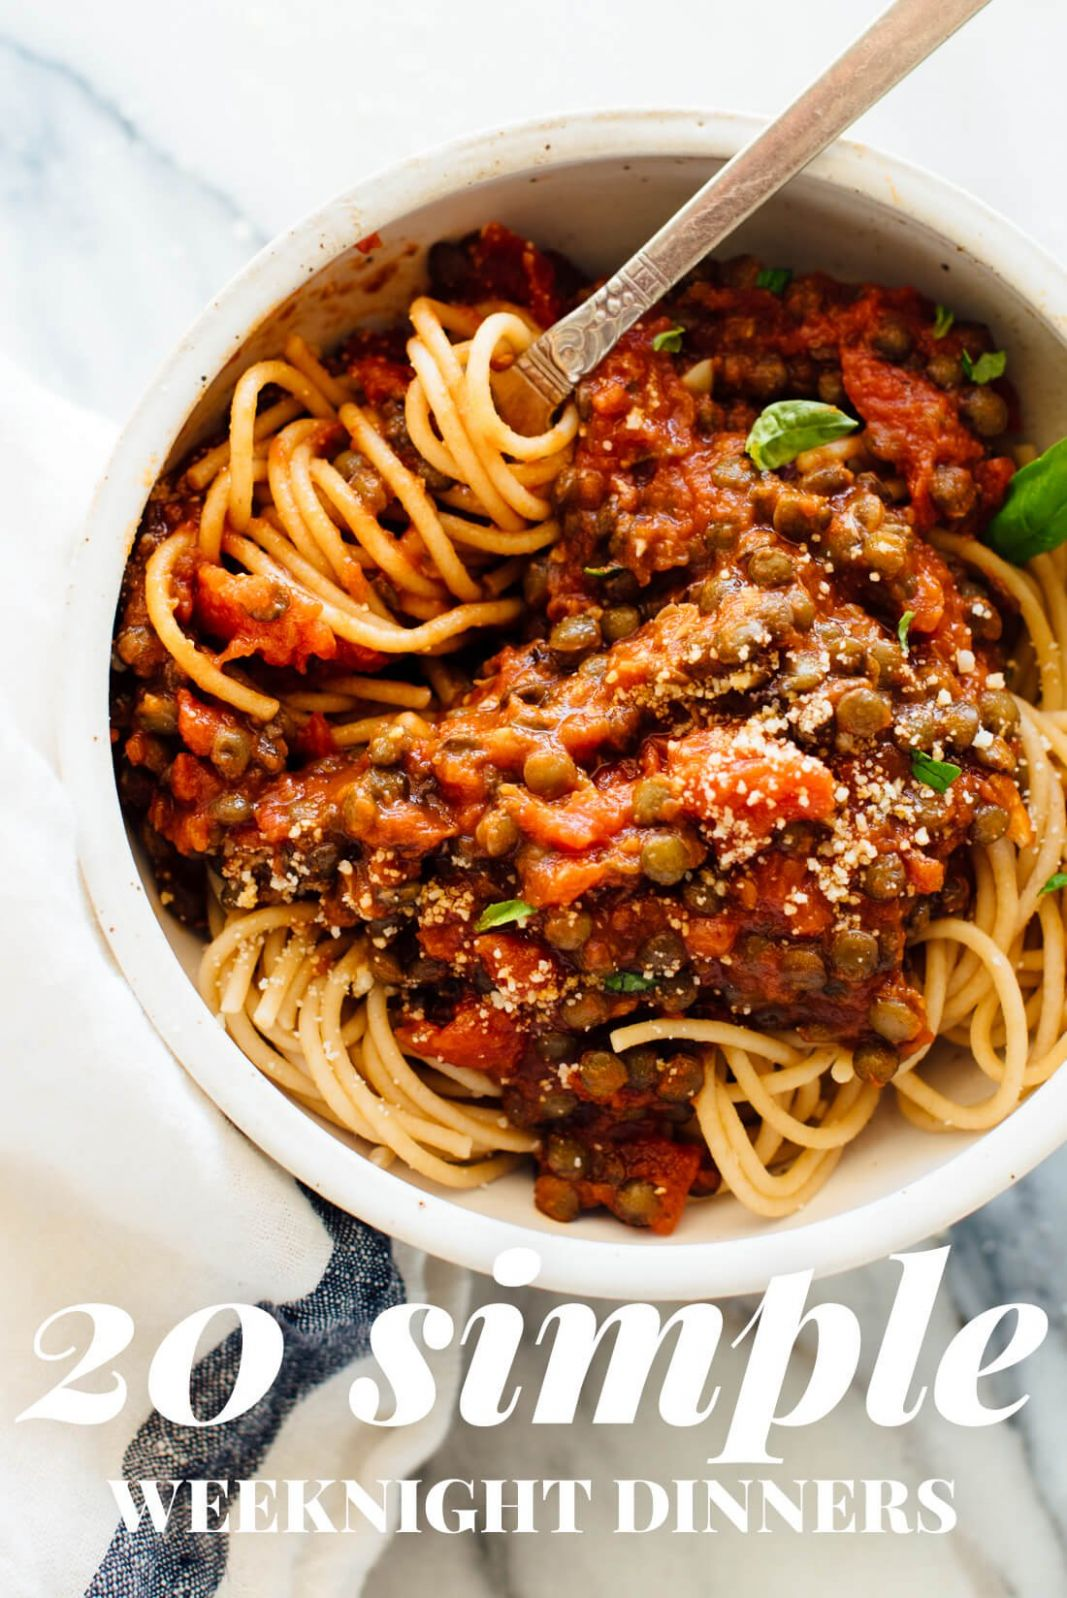 10 Simple Vegetarian Dinner Recipes - Cookie and Kate - Dinner Recipes Easy Vegetarian